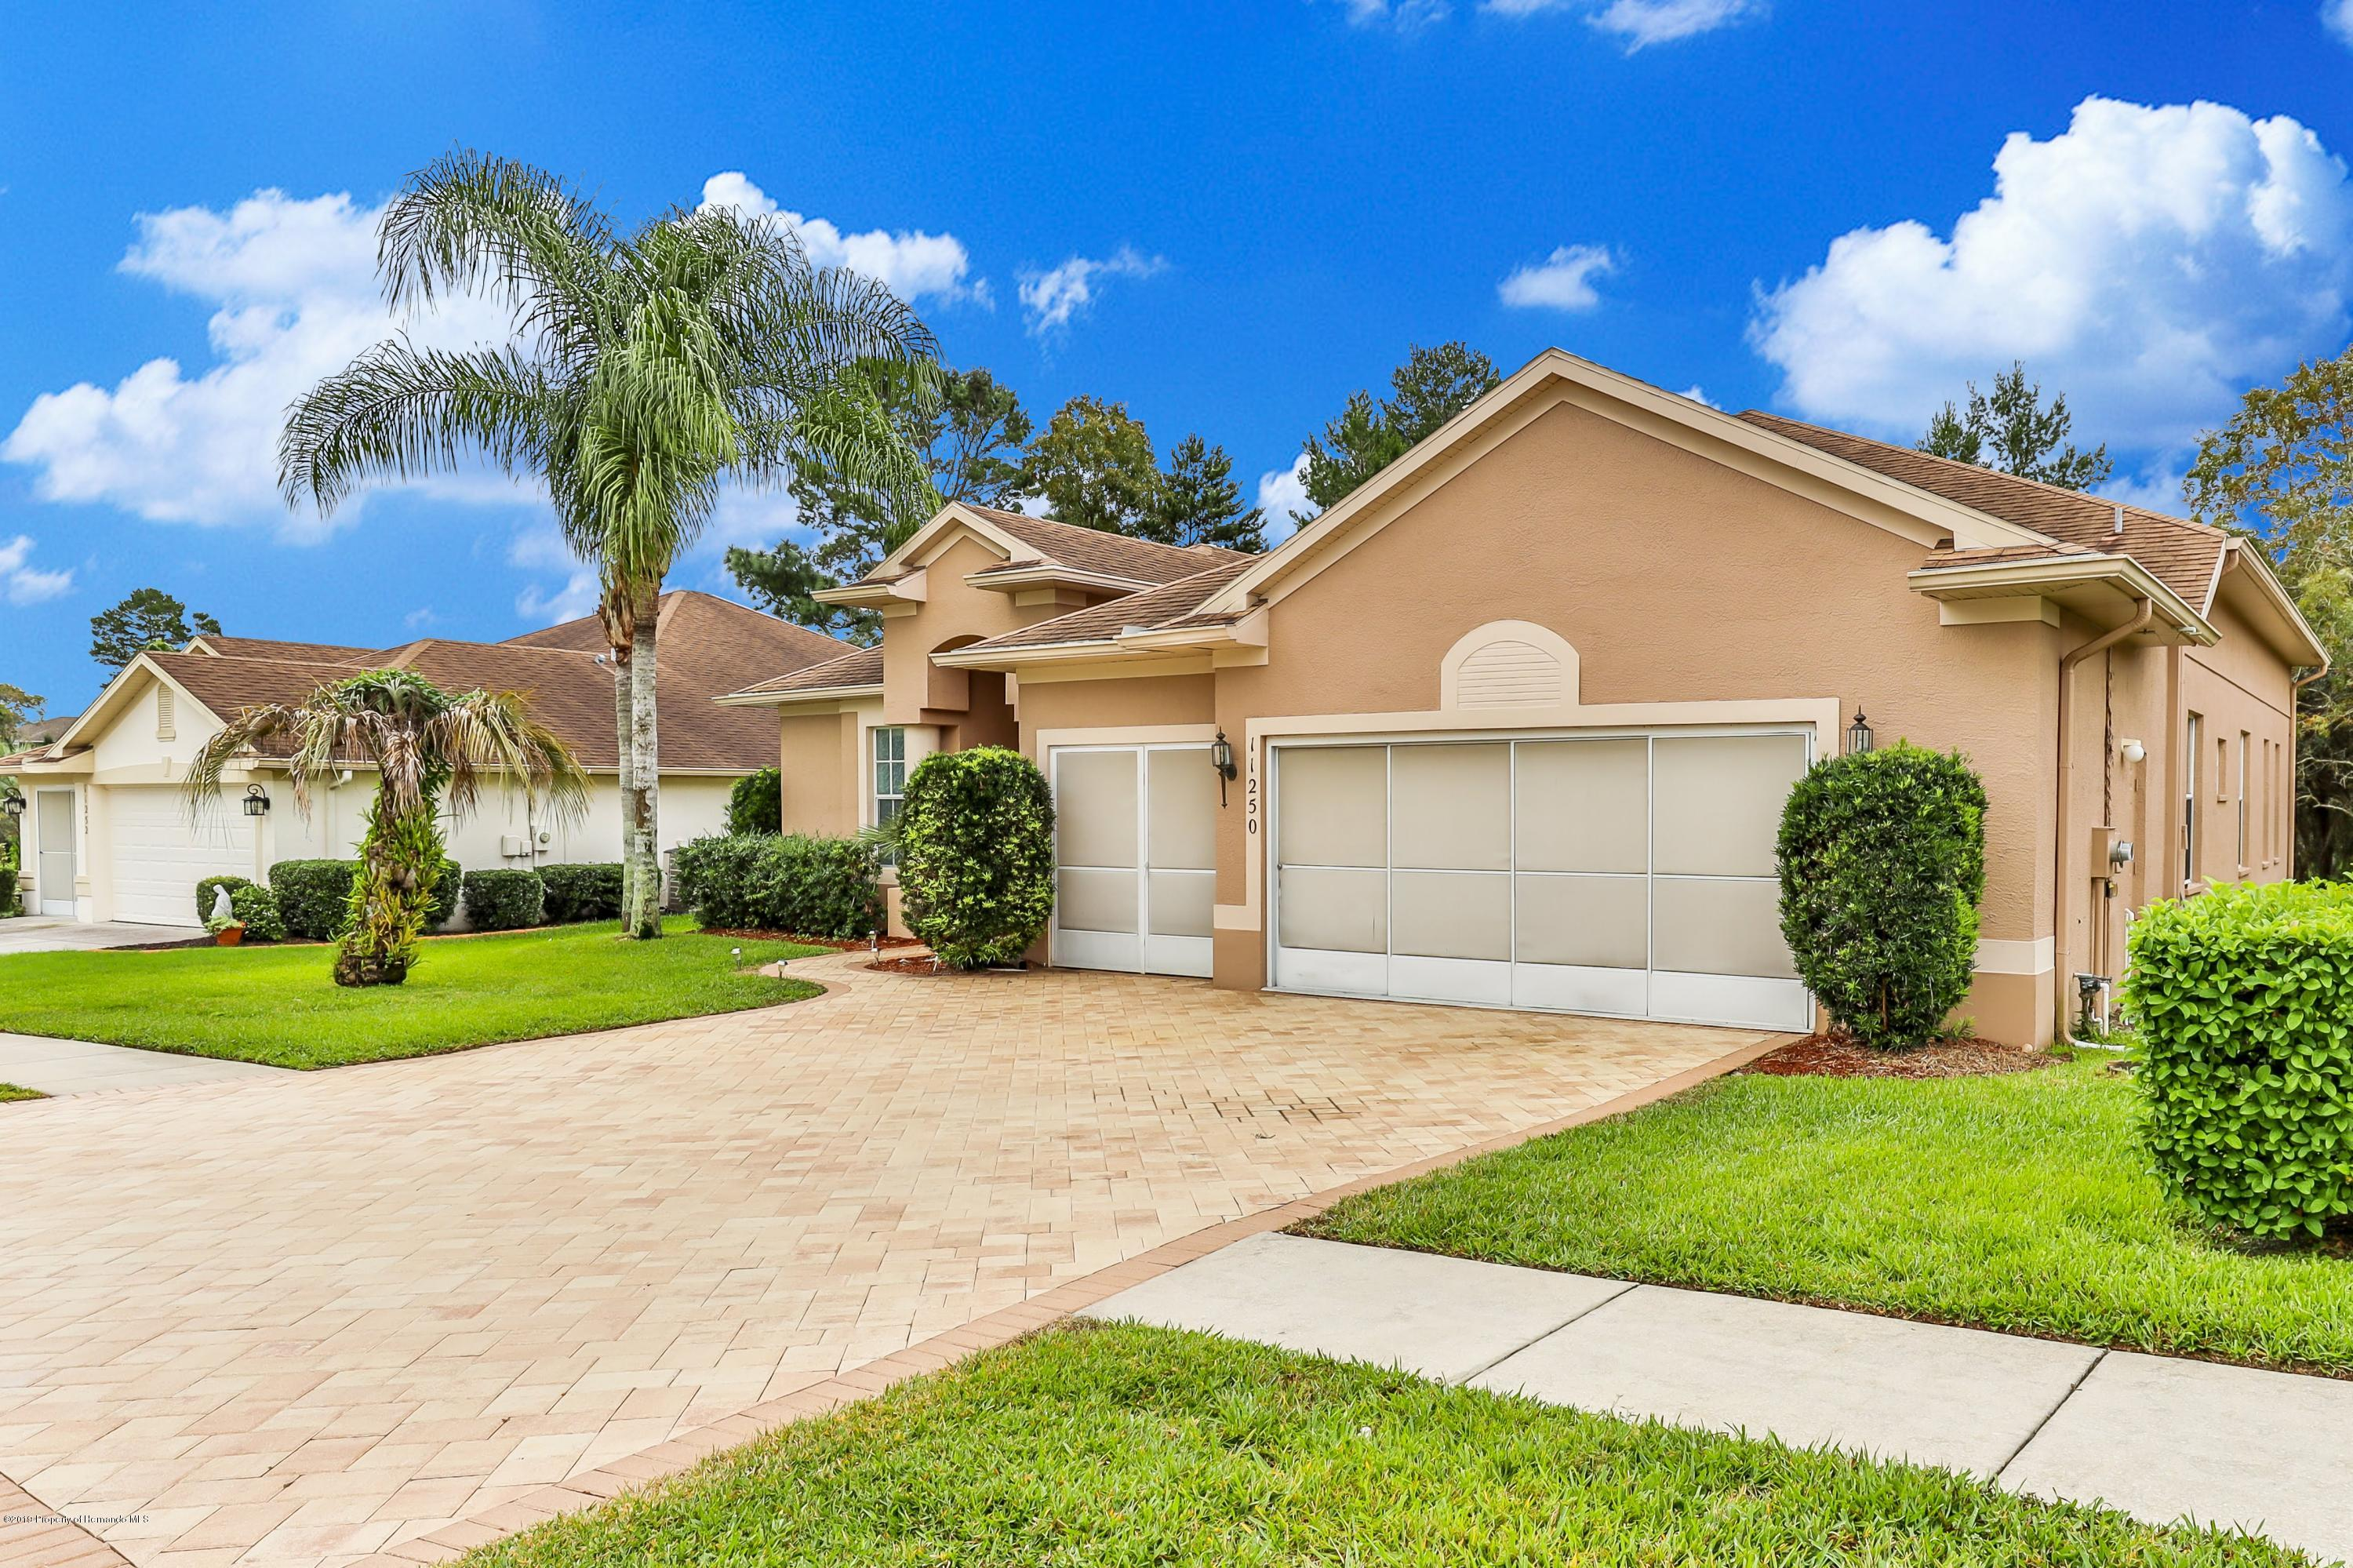 Image for SINGLE FAMILY RESIDENCE FOR SALE IN WELLINGTON AT SEVEN HILLS PH 4 SUBDIVISION (HERNANDO COUNTY)